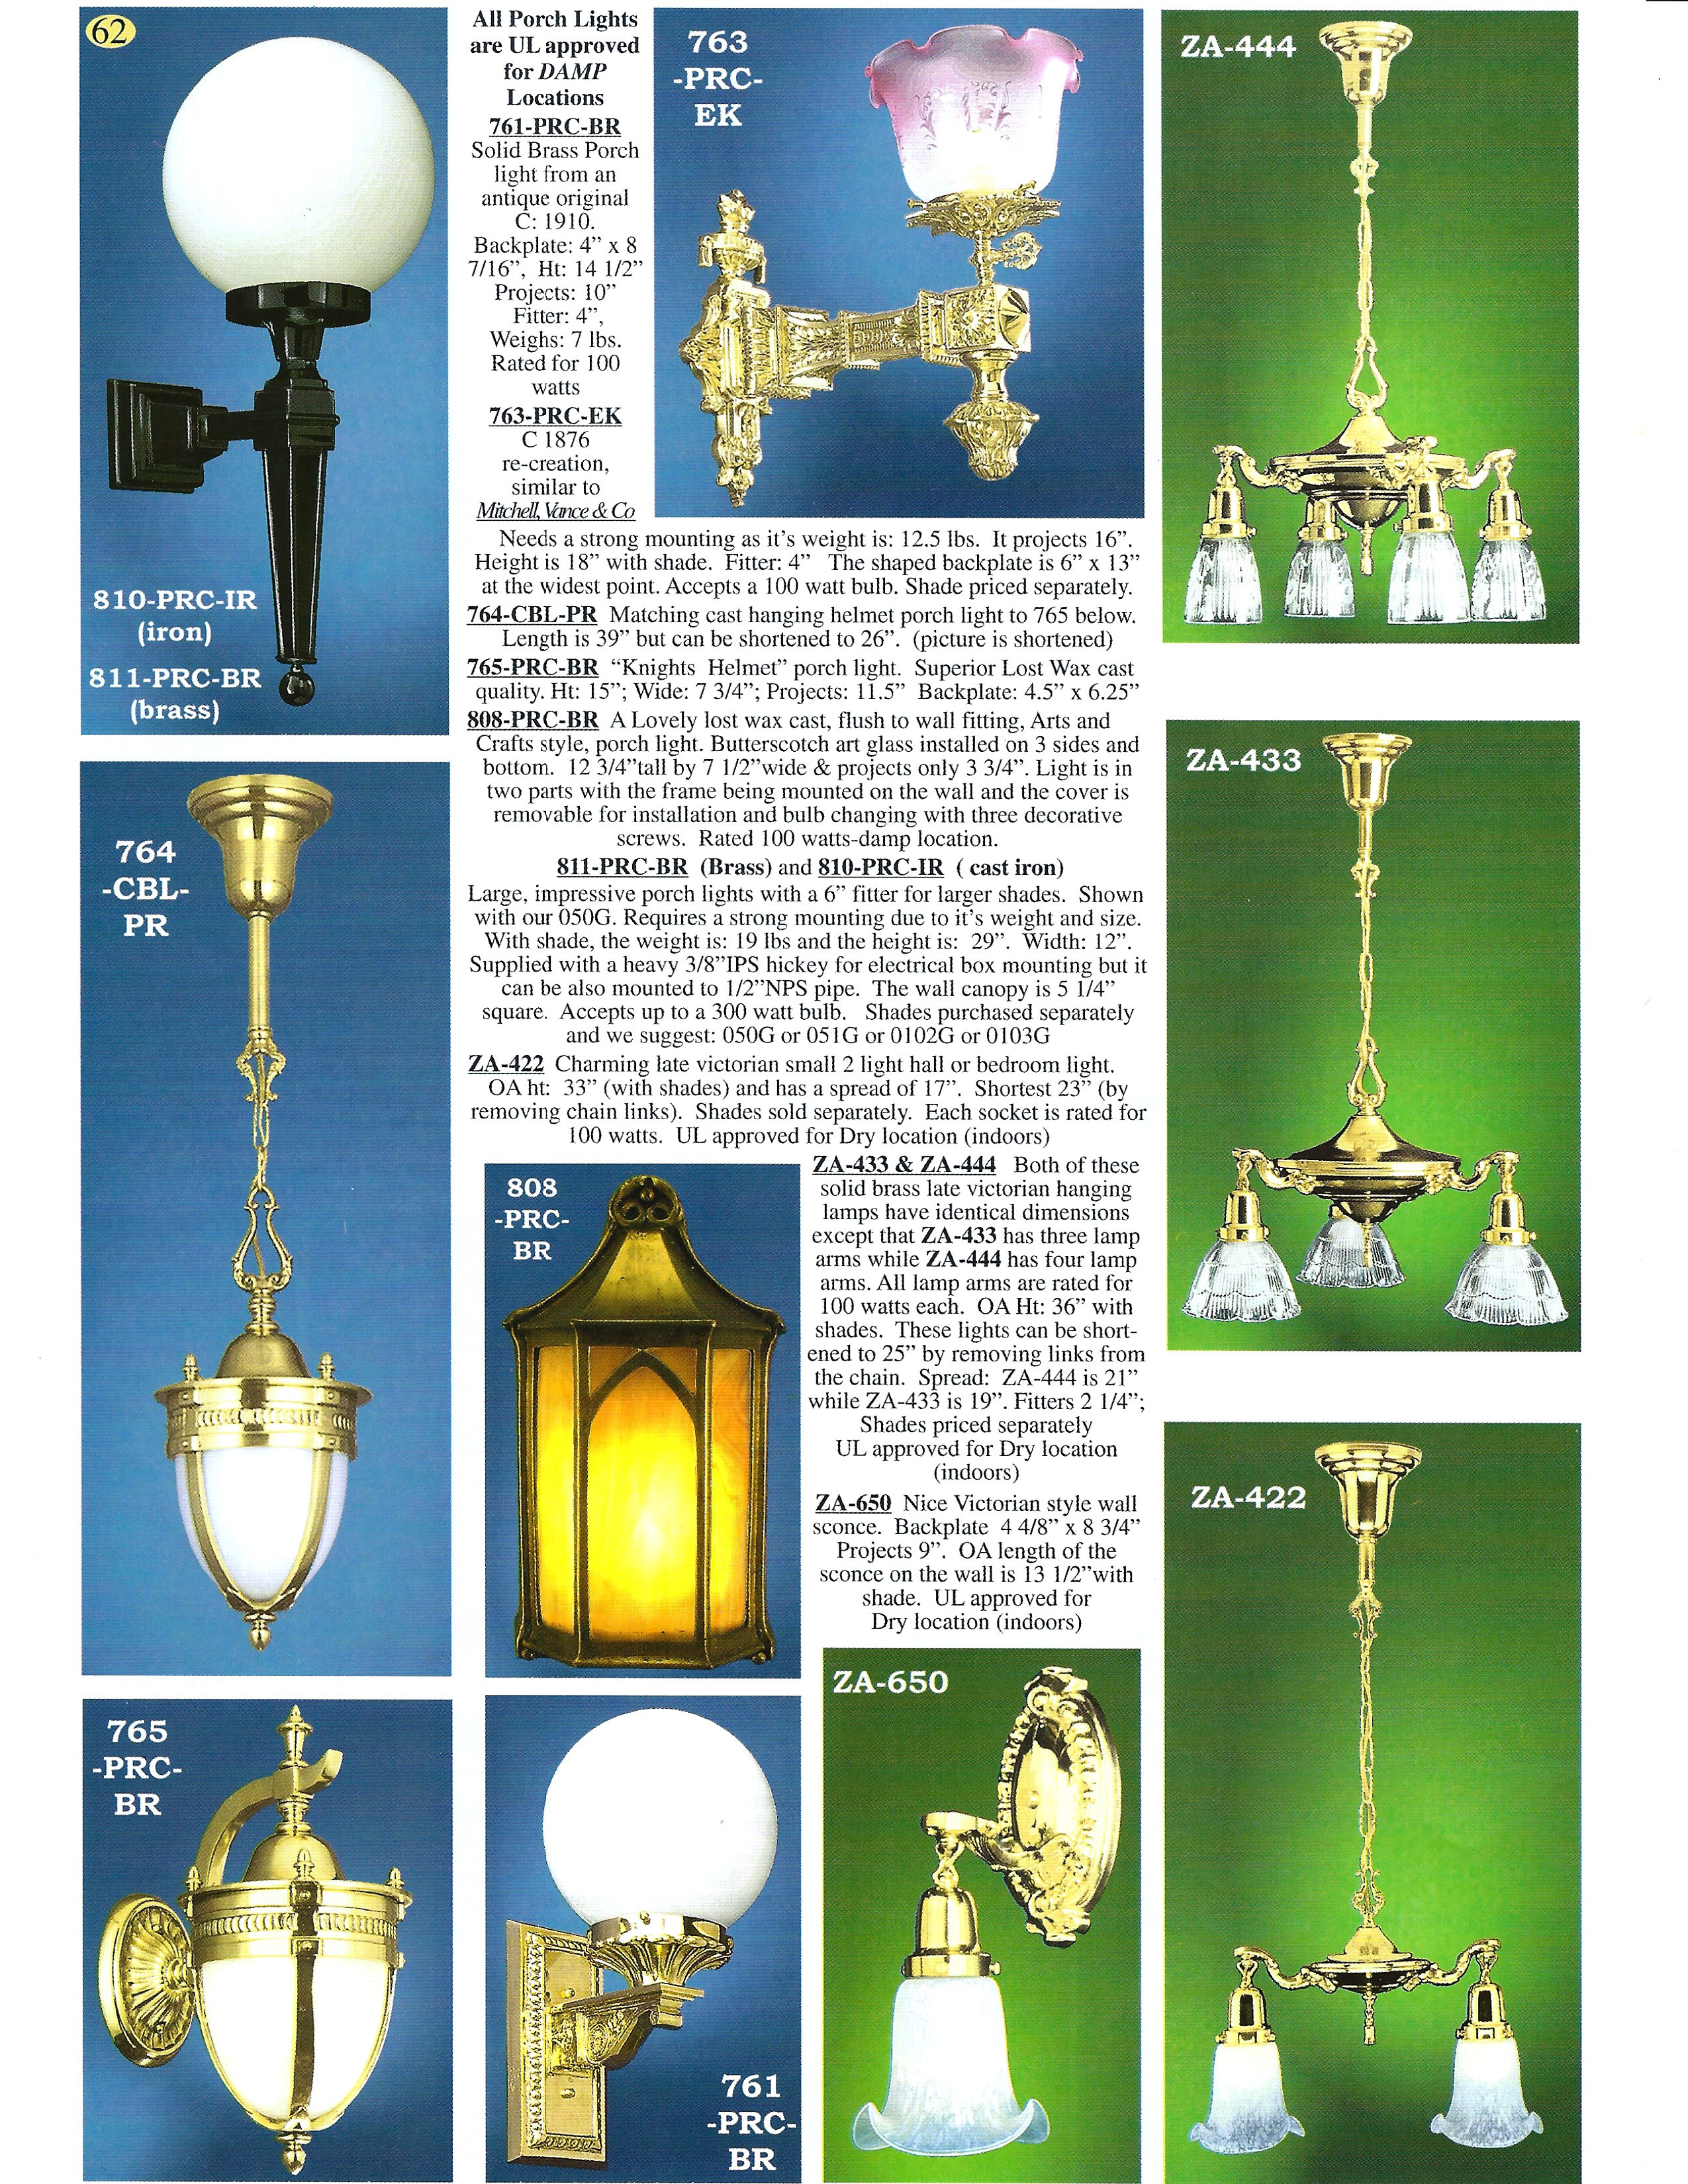 Catalog page 88